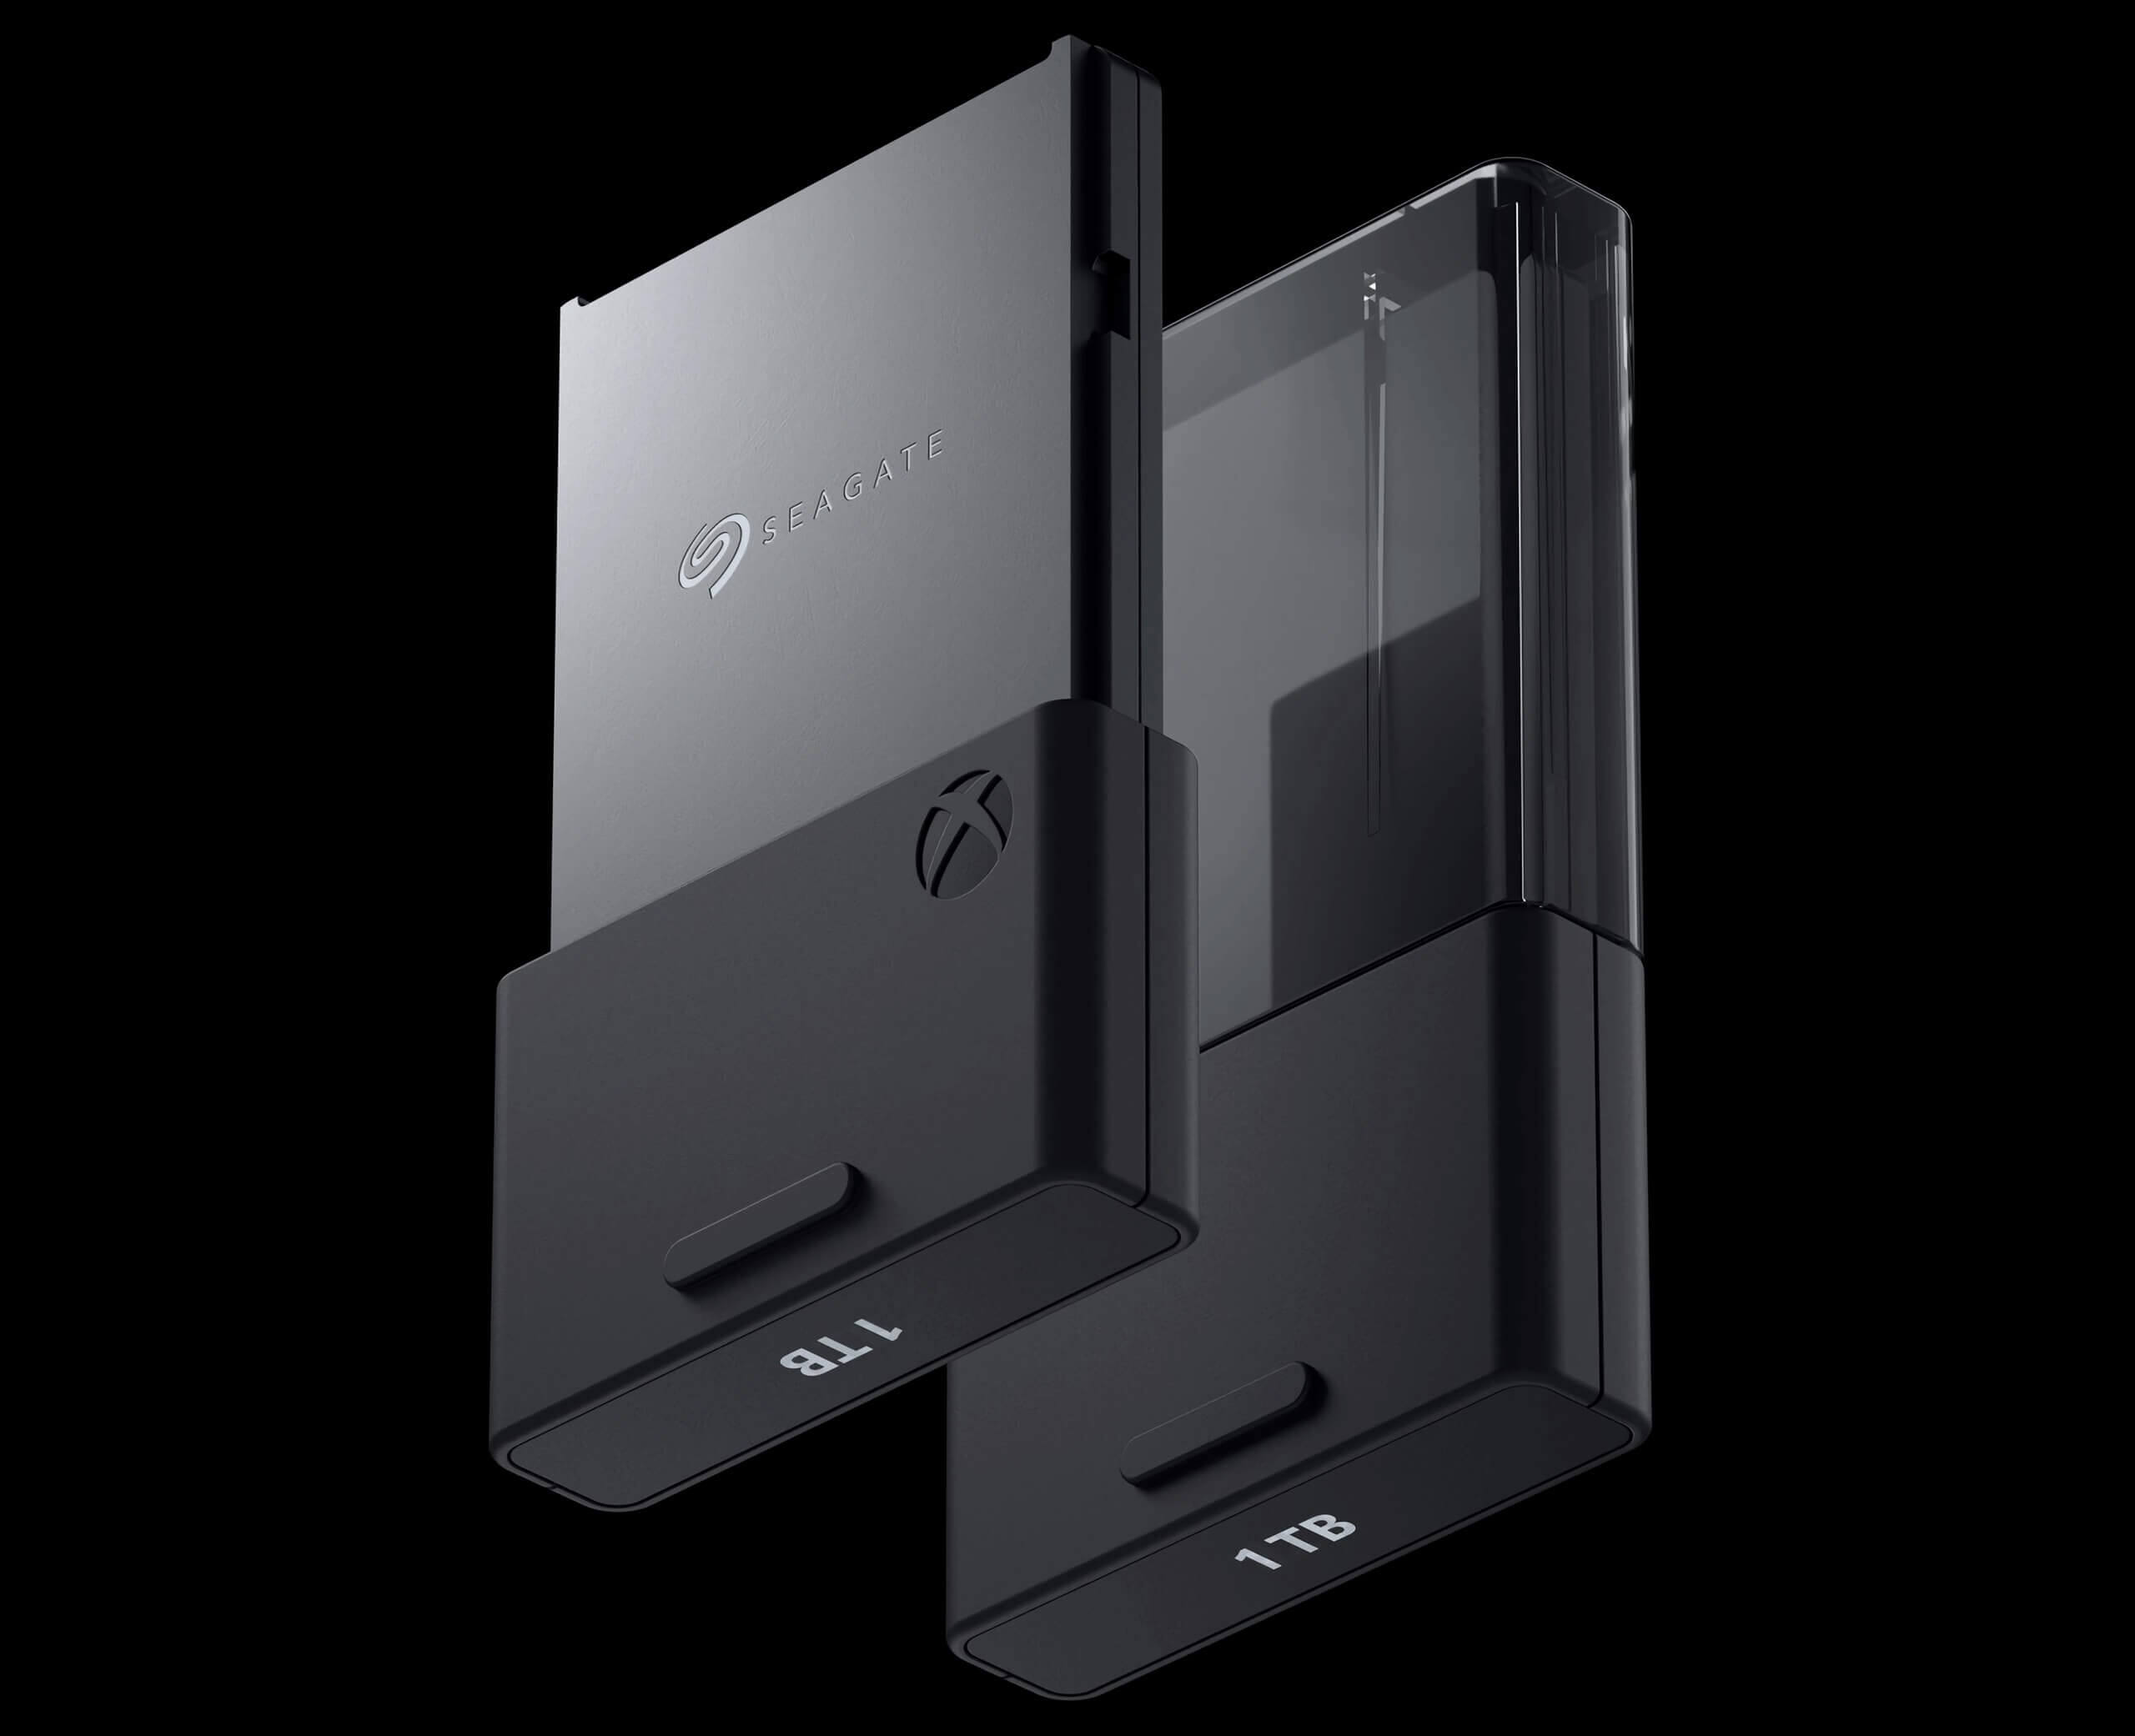 2020 03 16 image 55 - Xbox Series X price in Nigeria, release date, and full specs